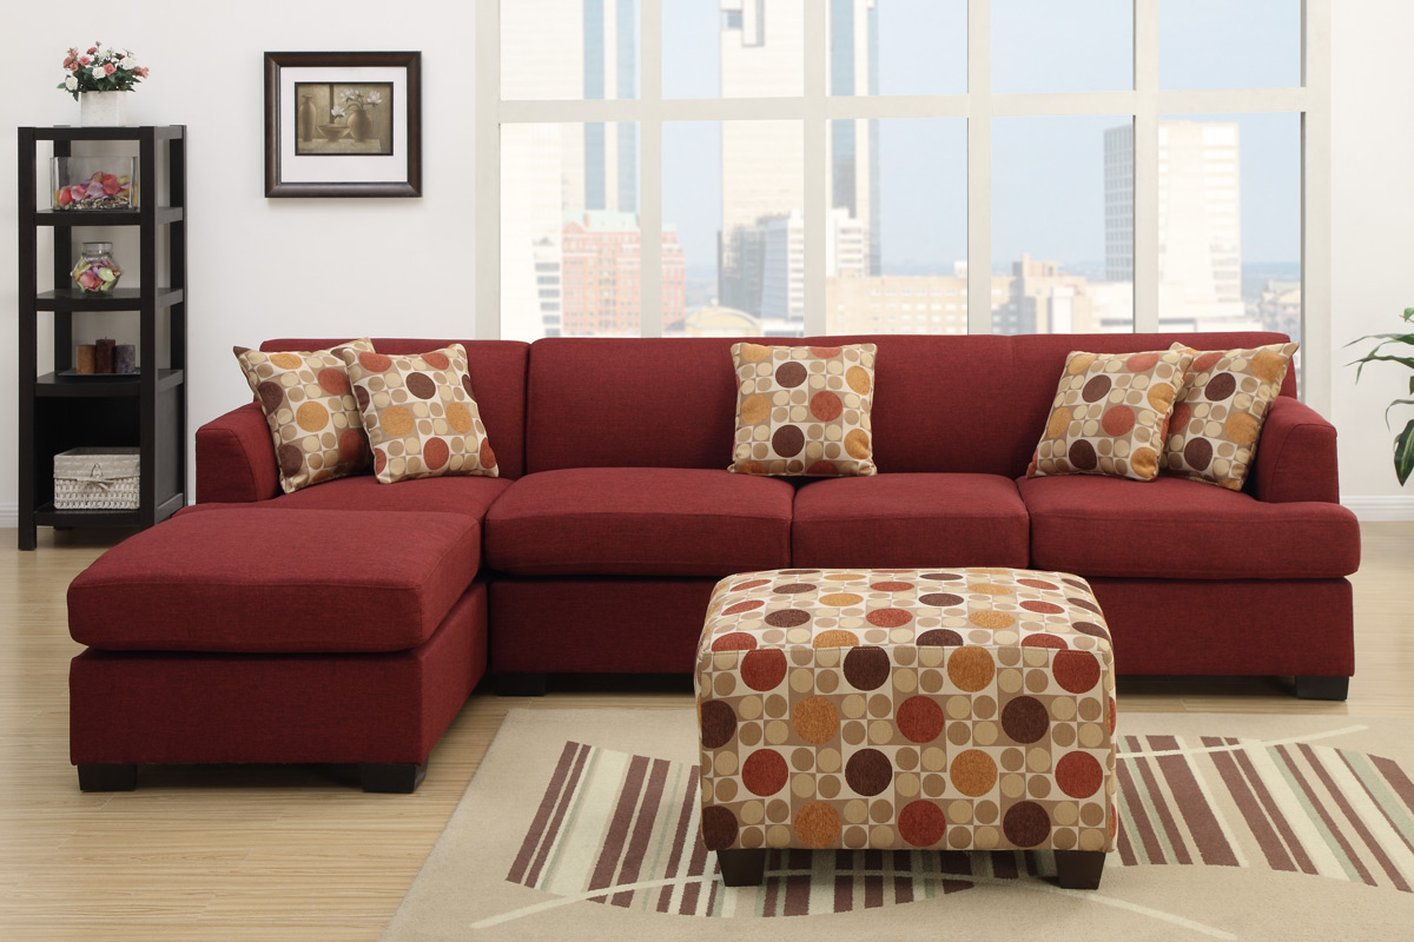 Red Fabric Chaise Lounge Steal A Sofa Furniture Outlet